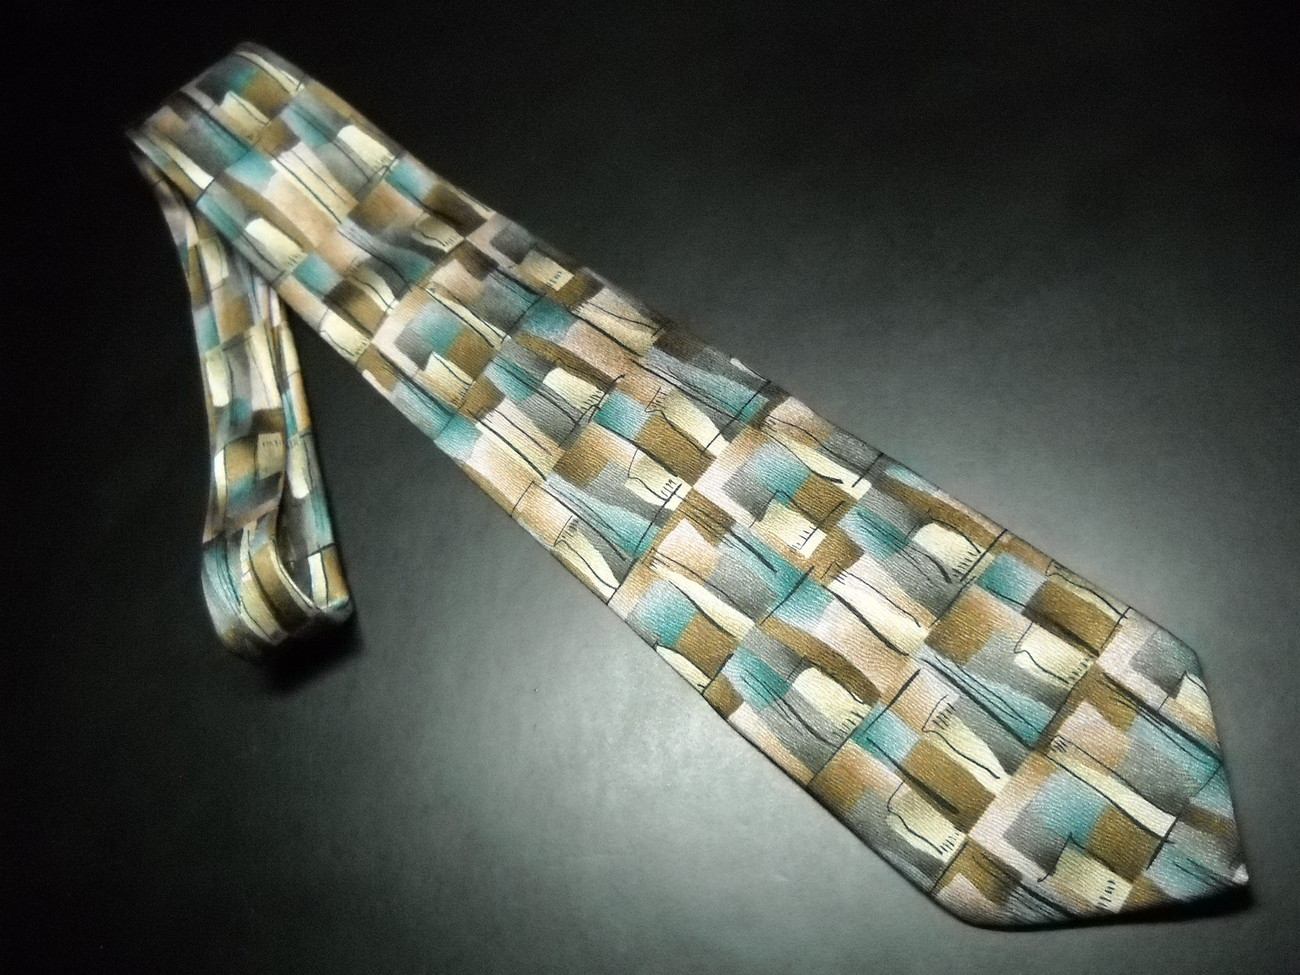 Primary image for J Garcia Neck Tie No Title Abstract Boxes of Subtle Browns Blues and Rosy Pinks